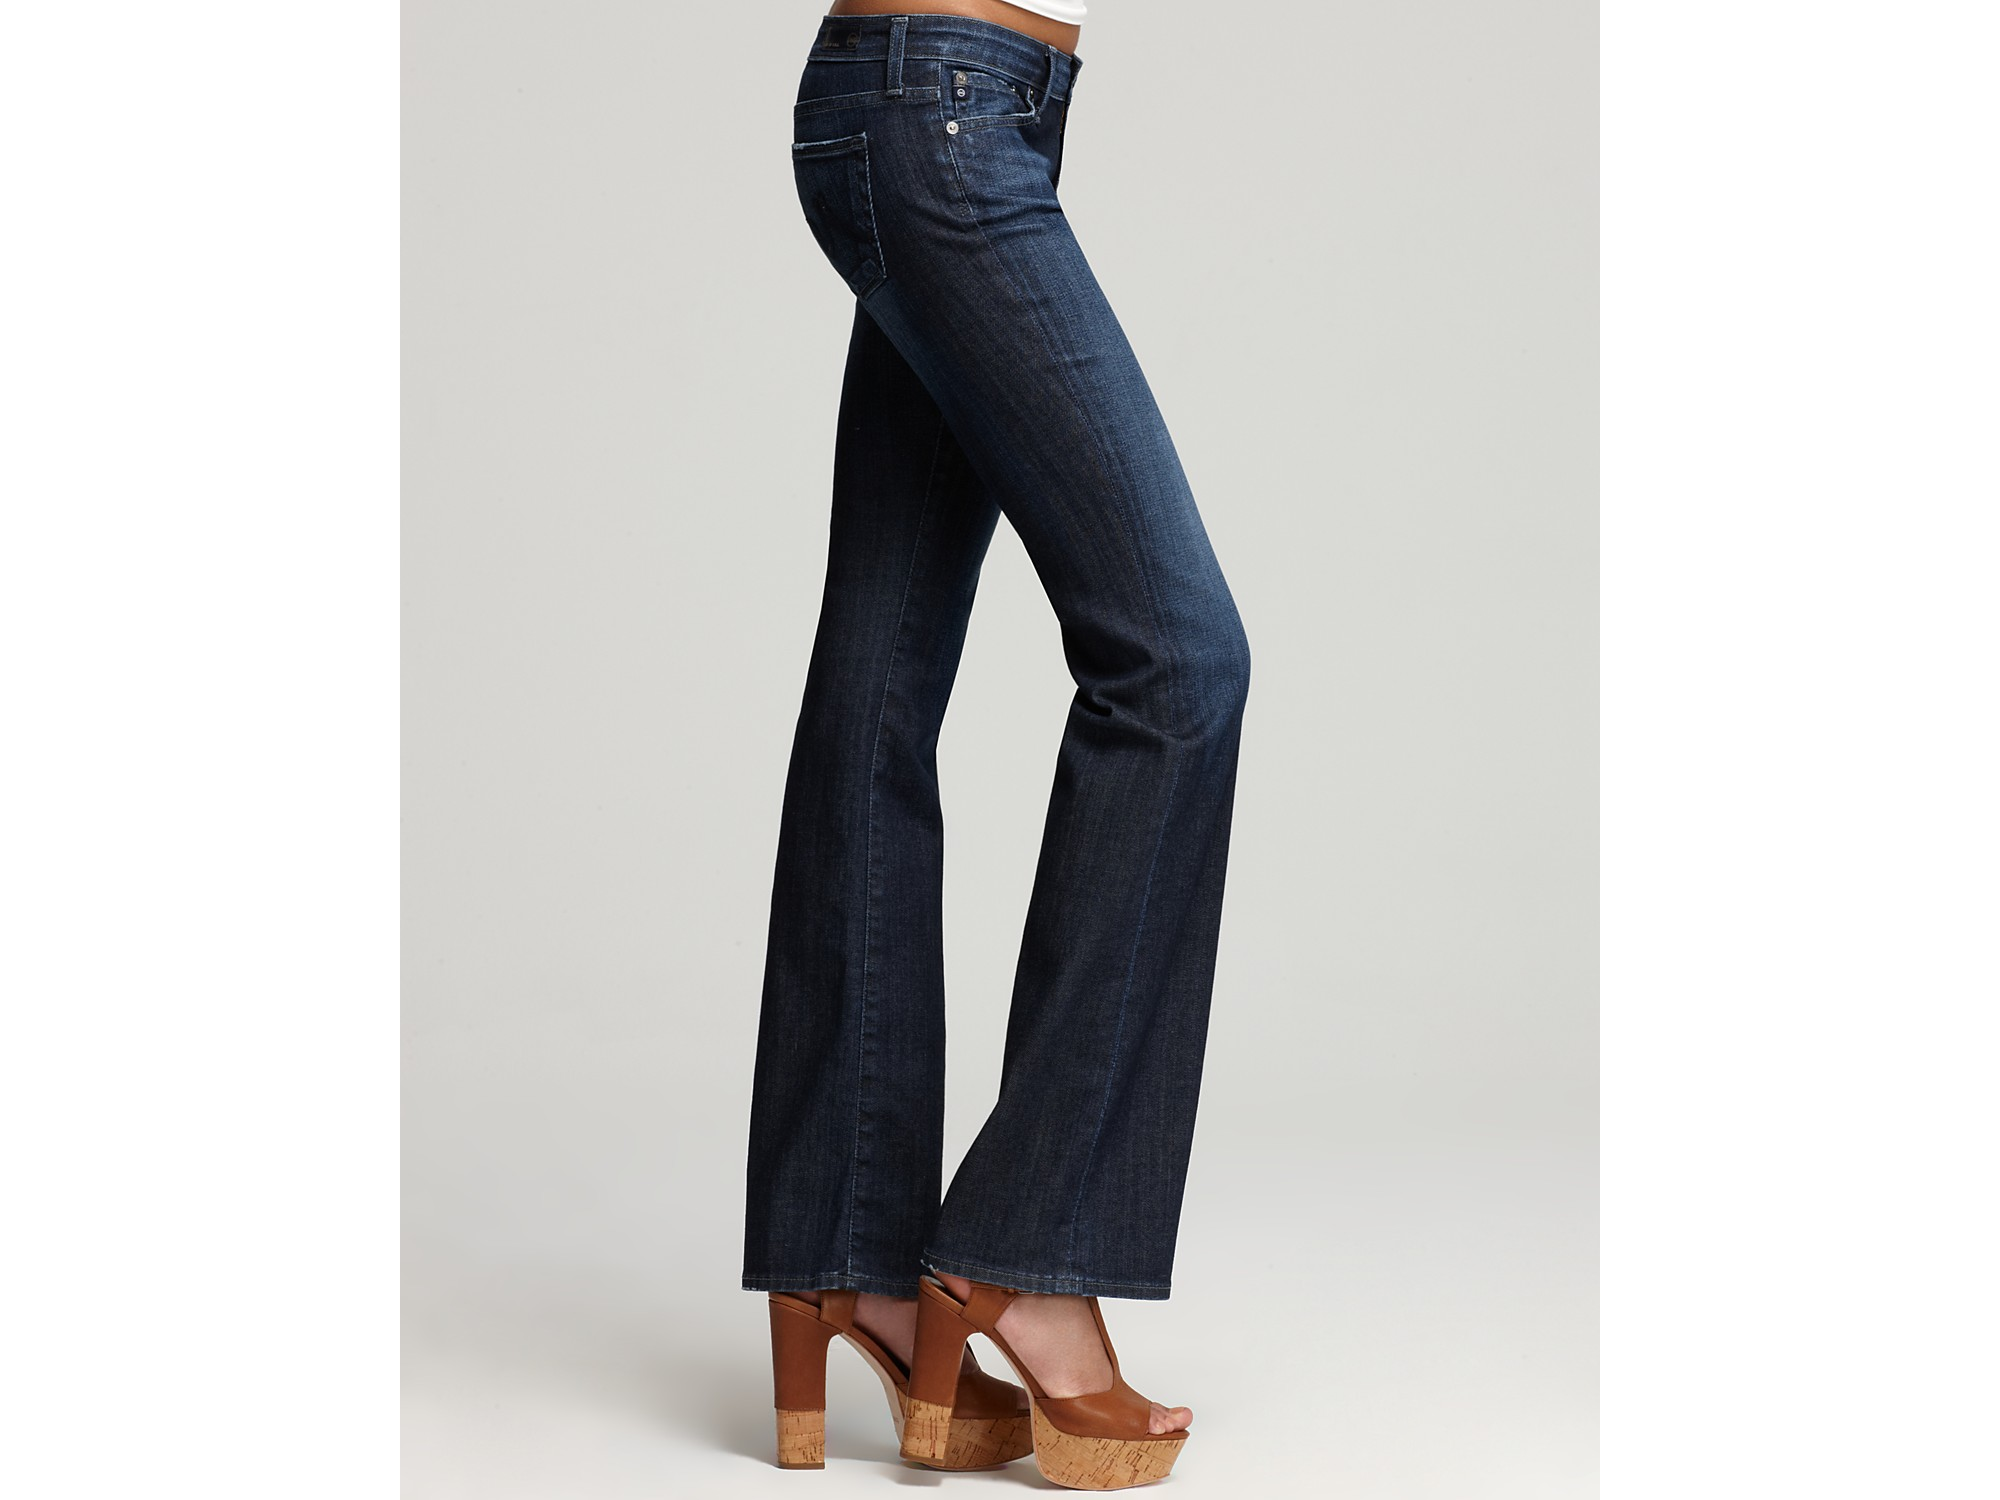 The jessie curvy bootcut jeans